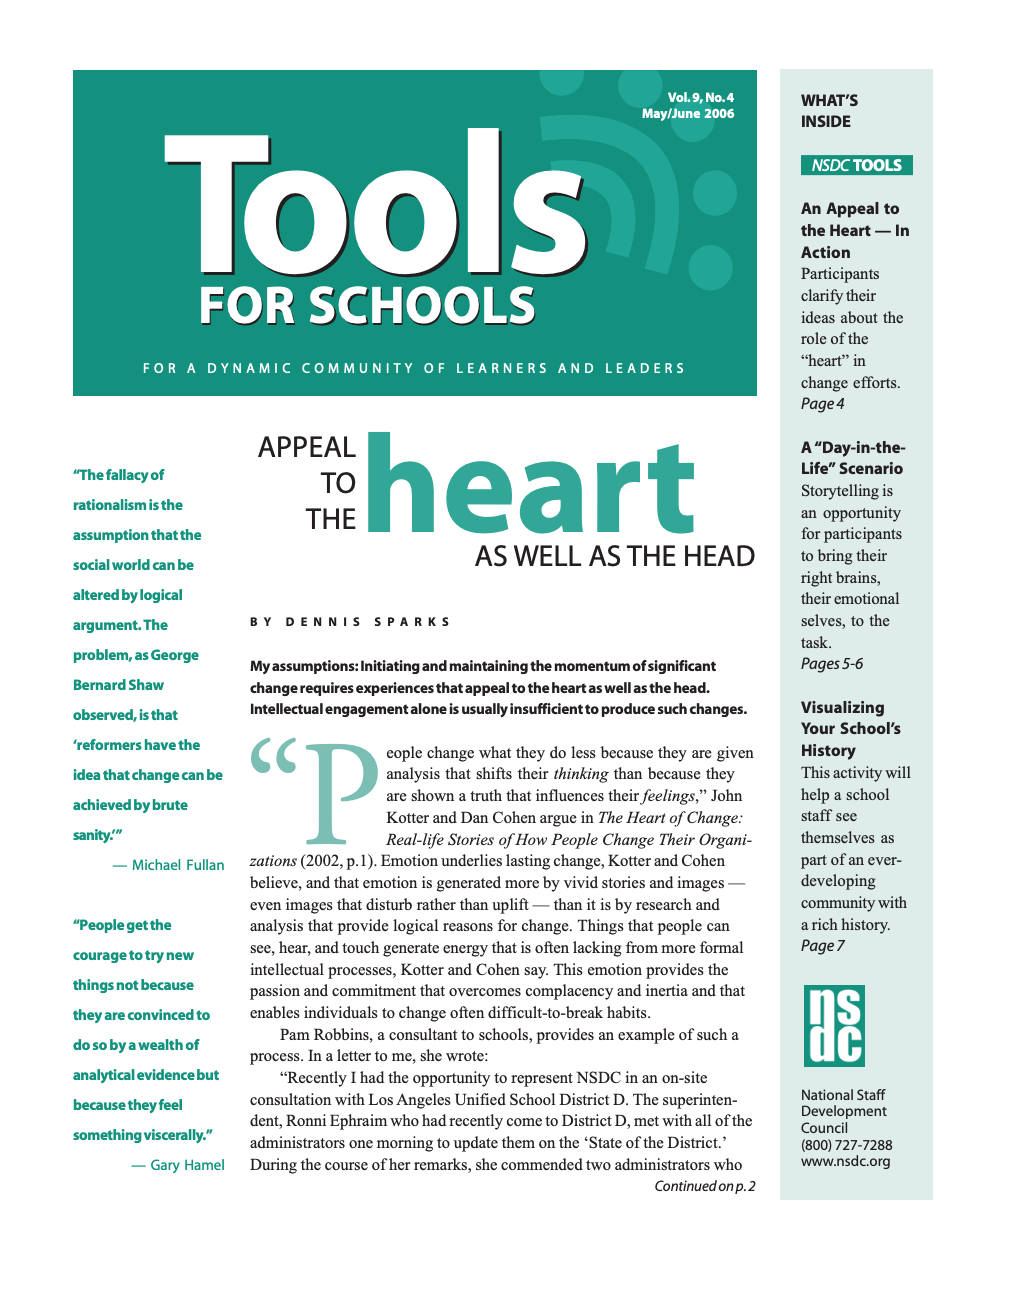 tools-for-schools-may-june-2006-vol-9-no-4